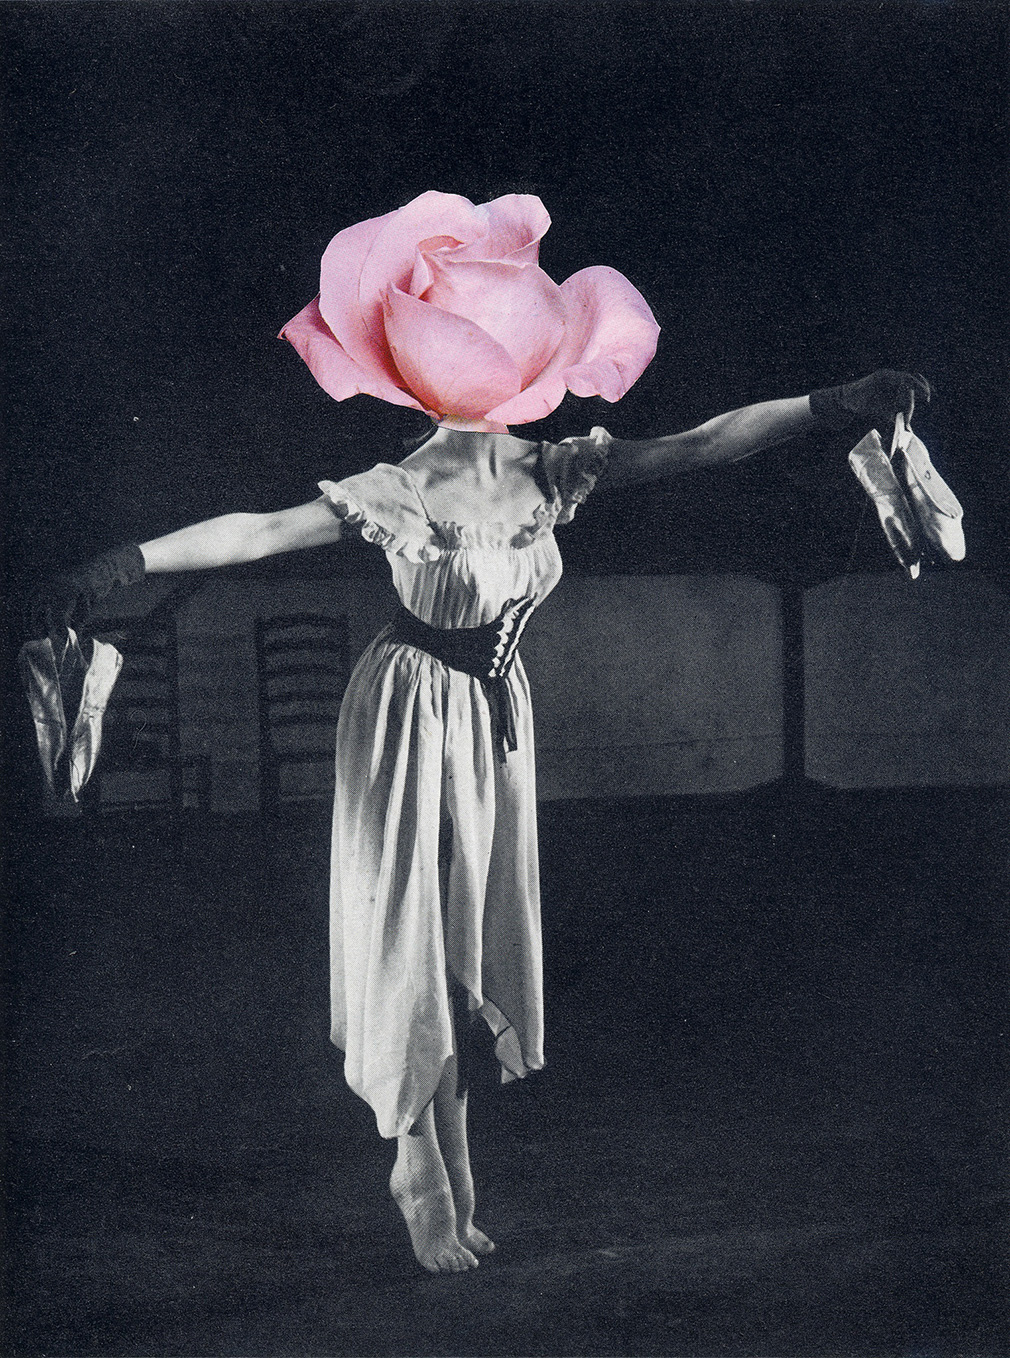 Collage of a woman with a rose for a head.